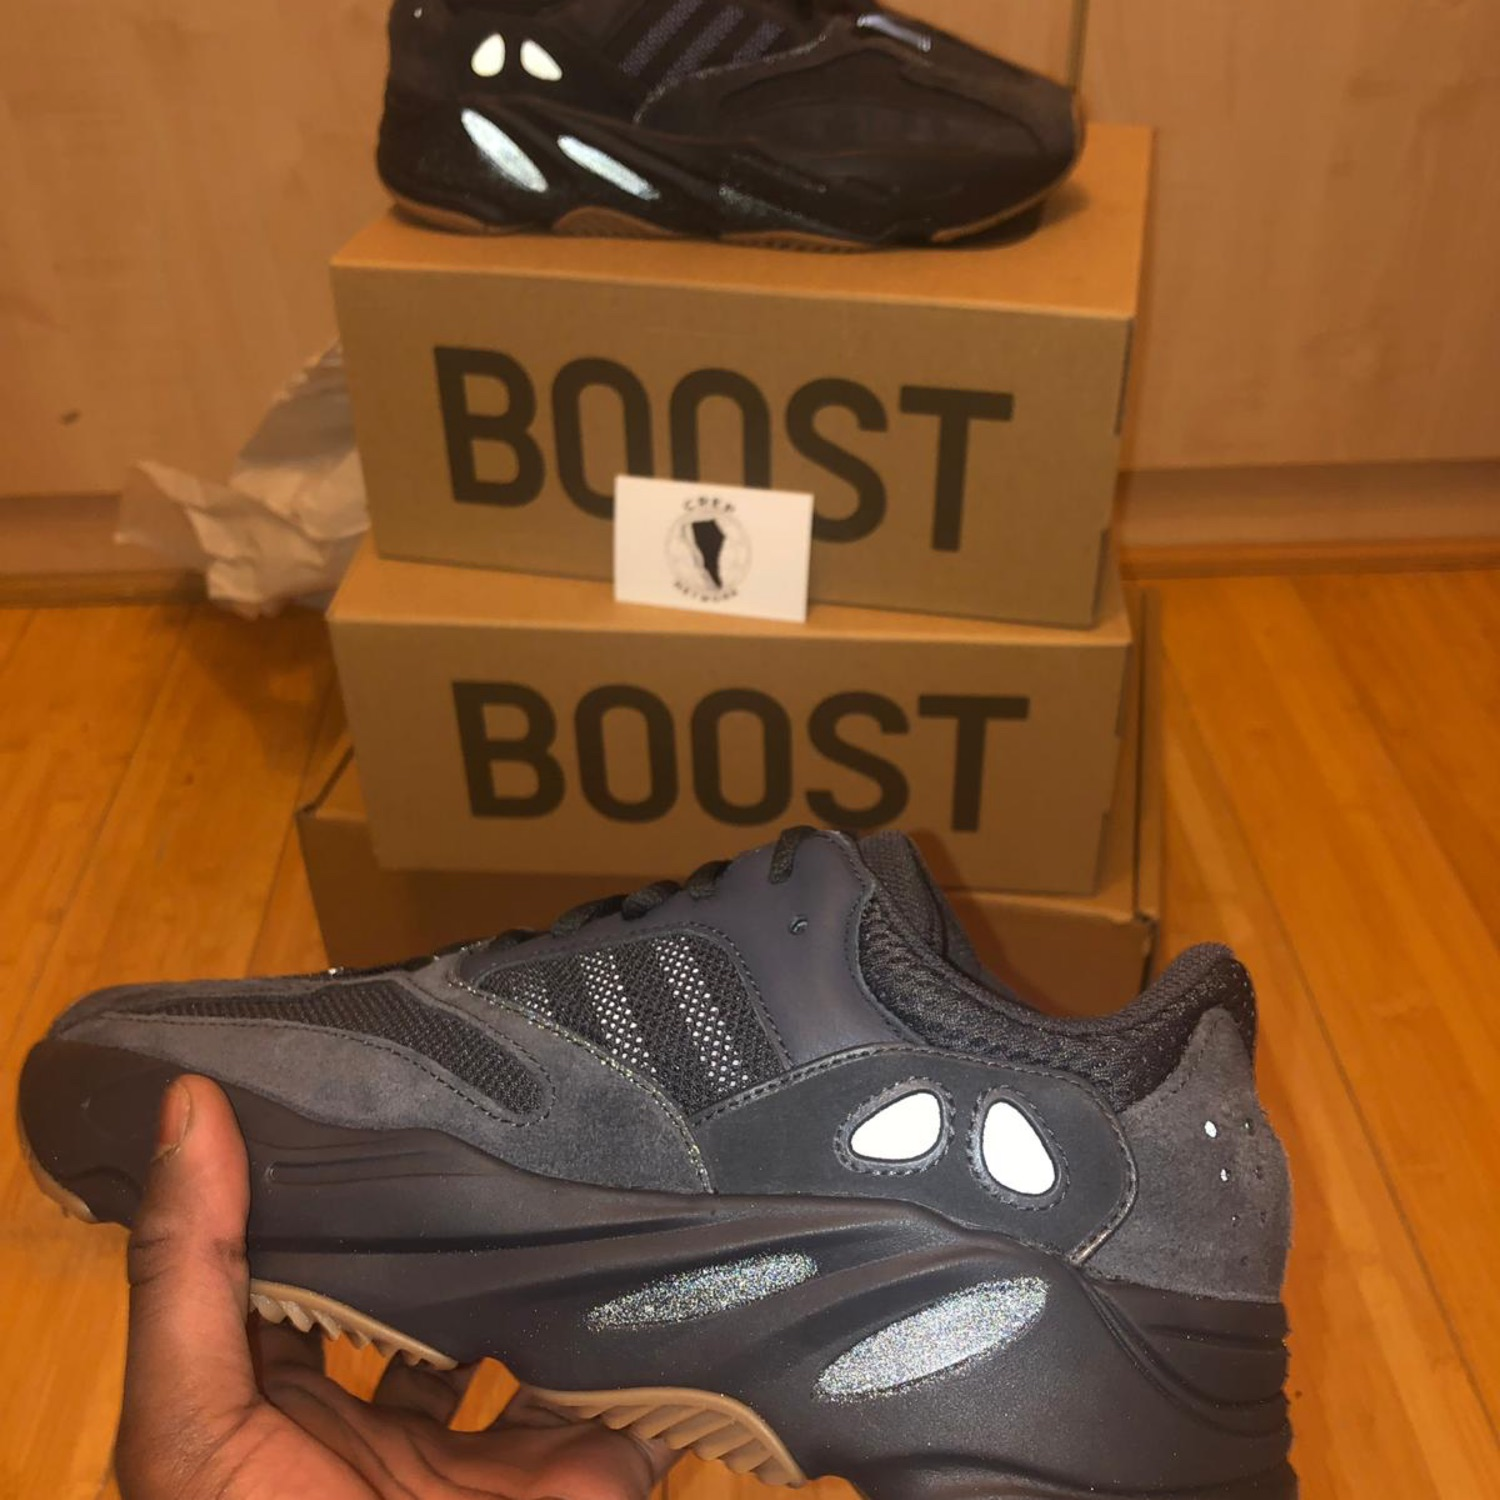 separation shoes f4555 09a1f Yeezy Boost 700 Utility Black